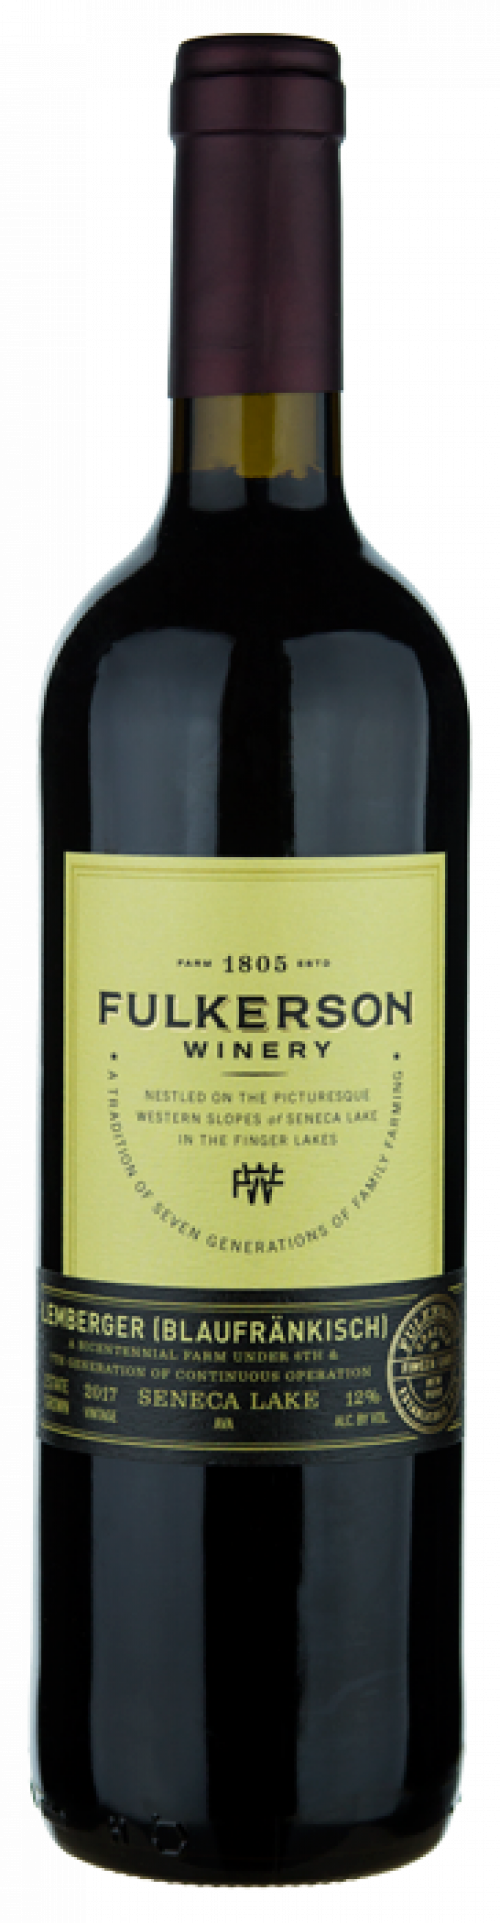 Fulkerson Lemberger (Blaufrankish) 750ml